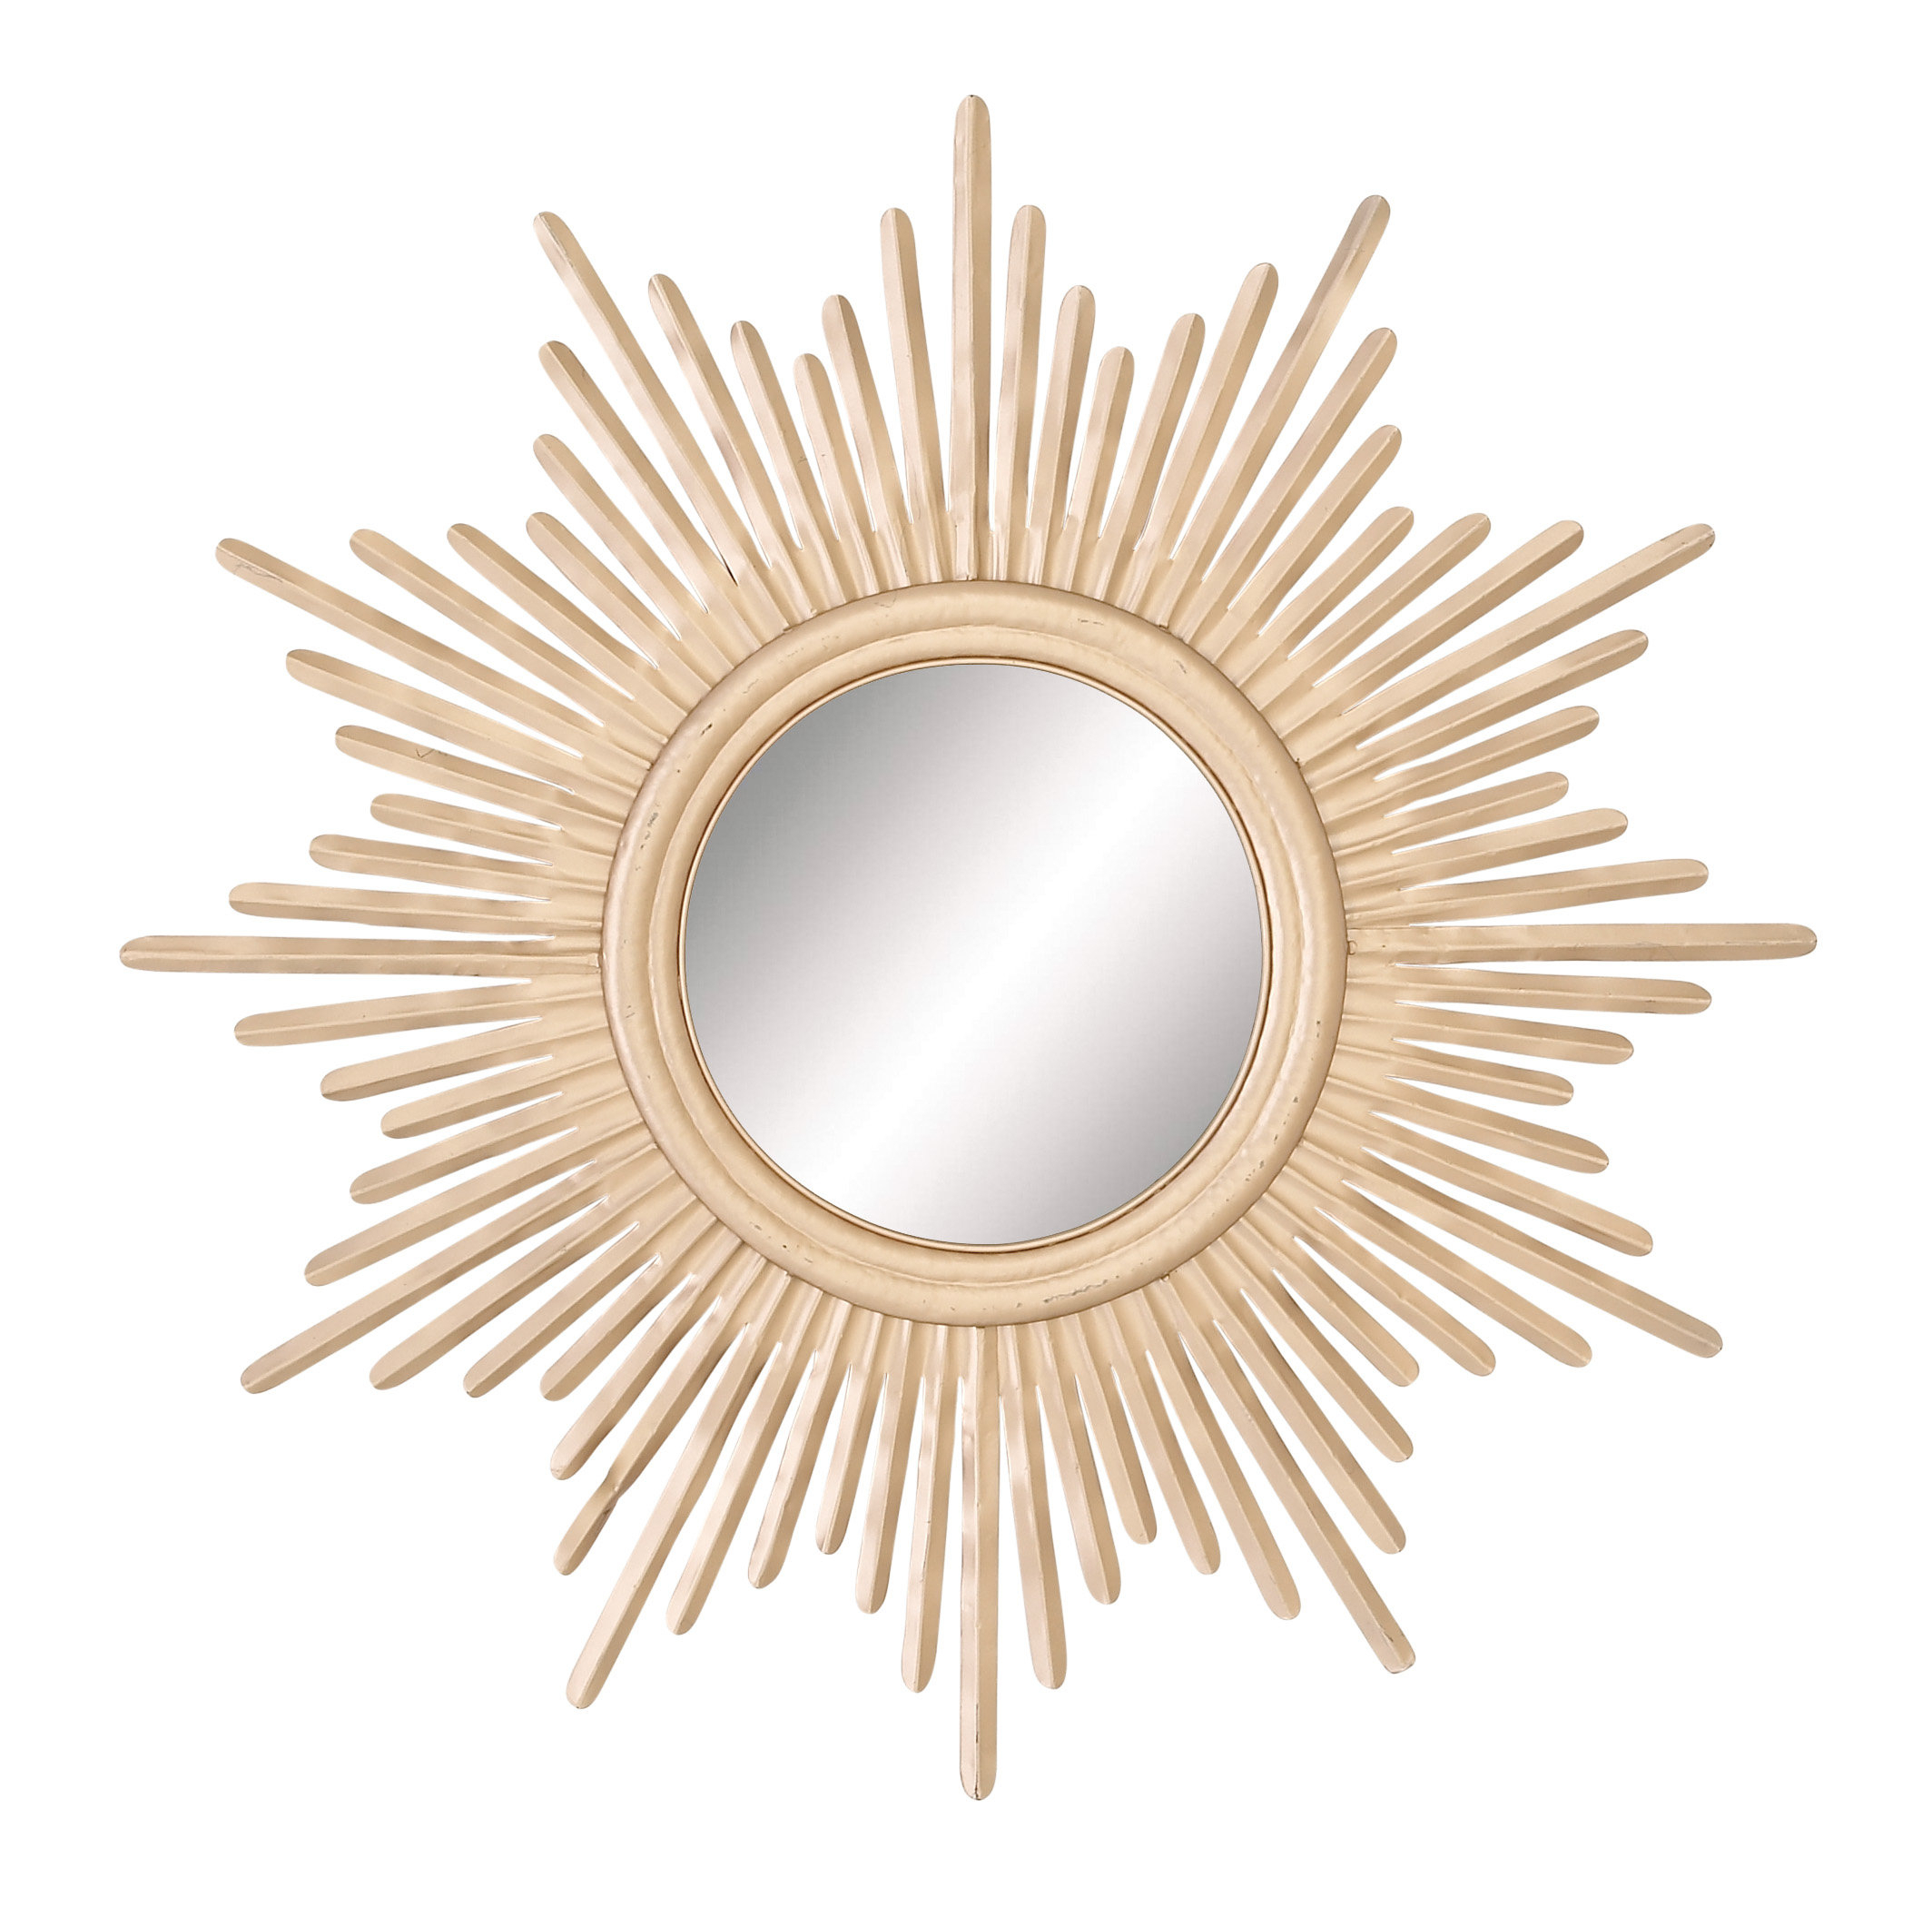 Metal Sunburst Wall Mirrors You'll Love In 2019 | Wayfair In Estrela Modern Sunburst Metal Wall Mirrors (View 8 of 20)